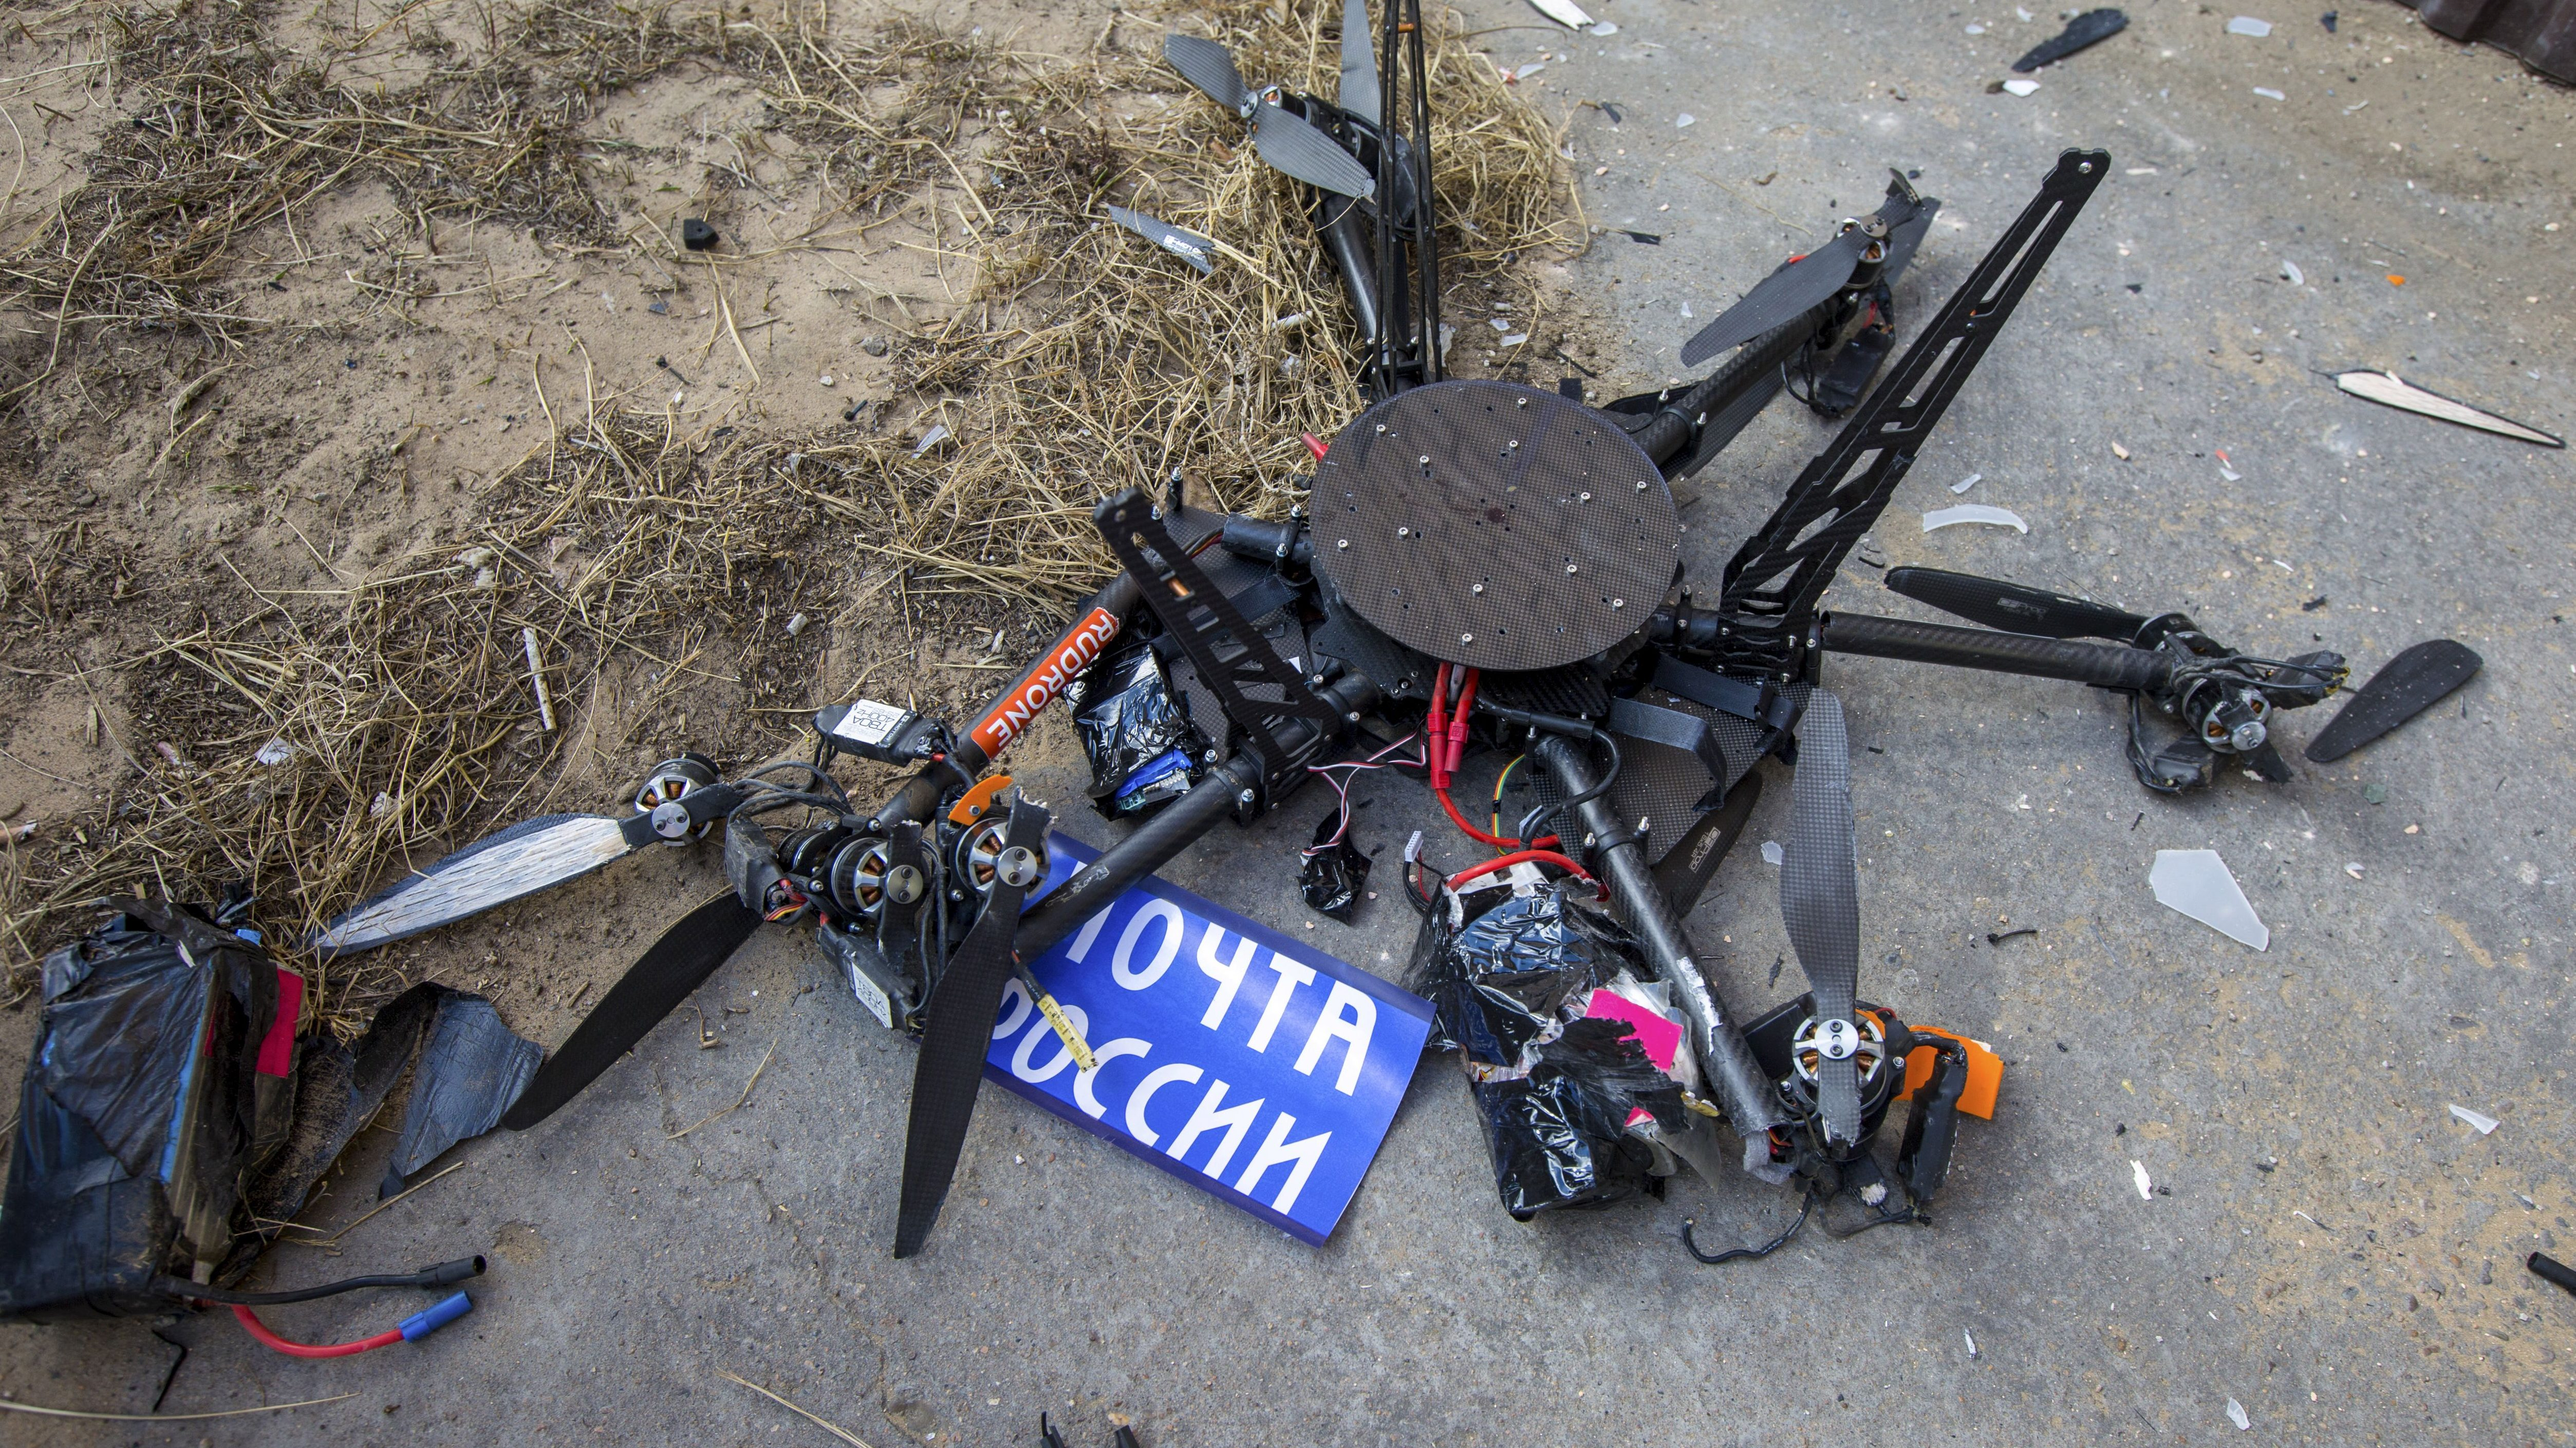 A view shows a damaged mail delivery drone, which crashed into a building during a test launch in Ulan-Ude